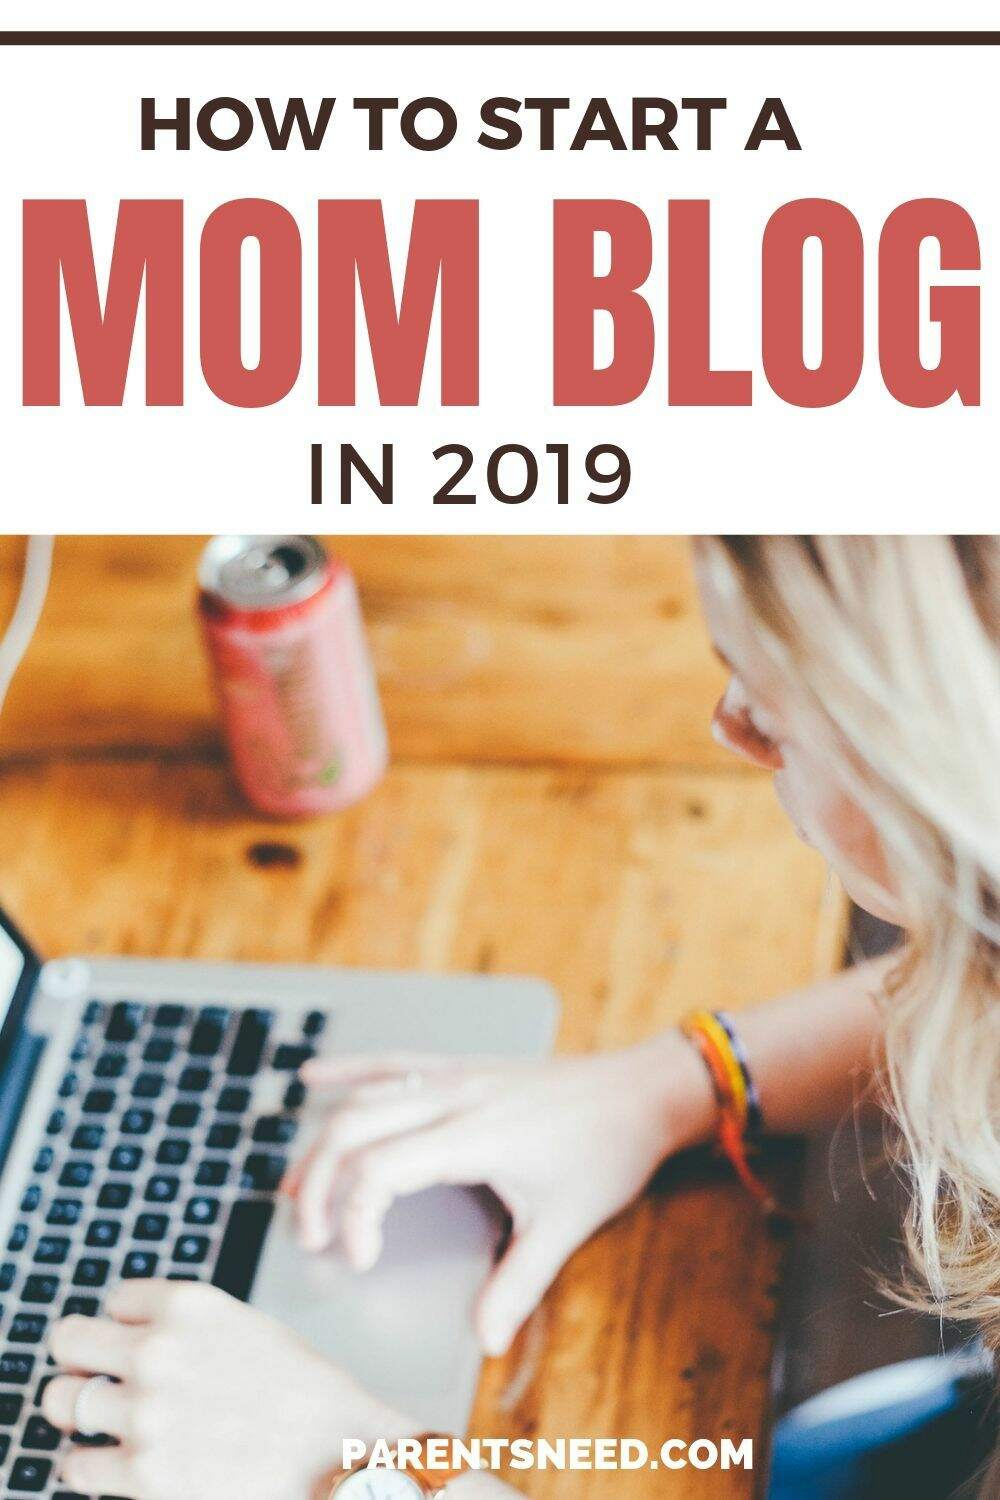 A mom blogging on her computer